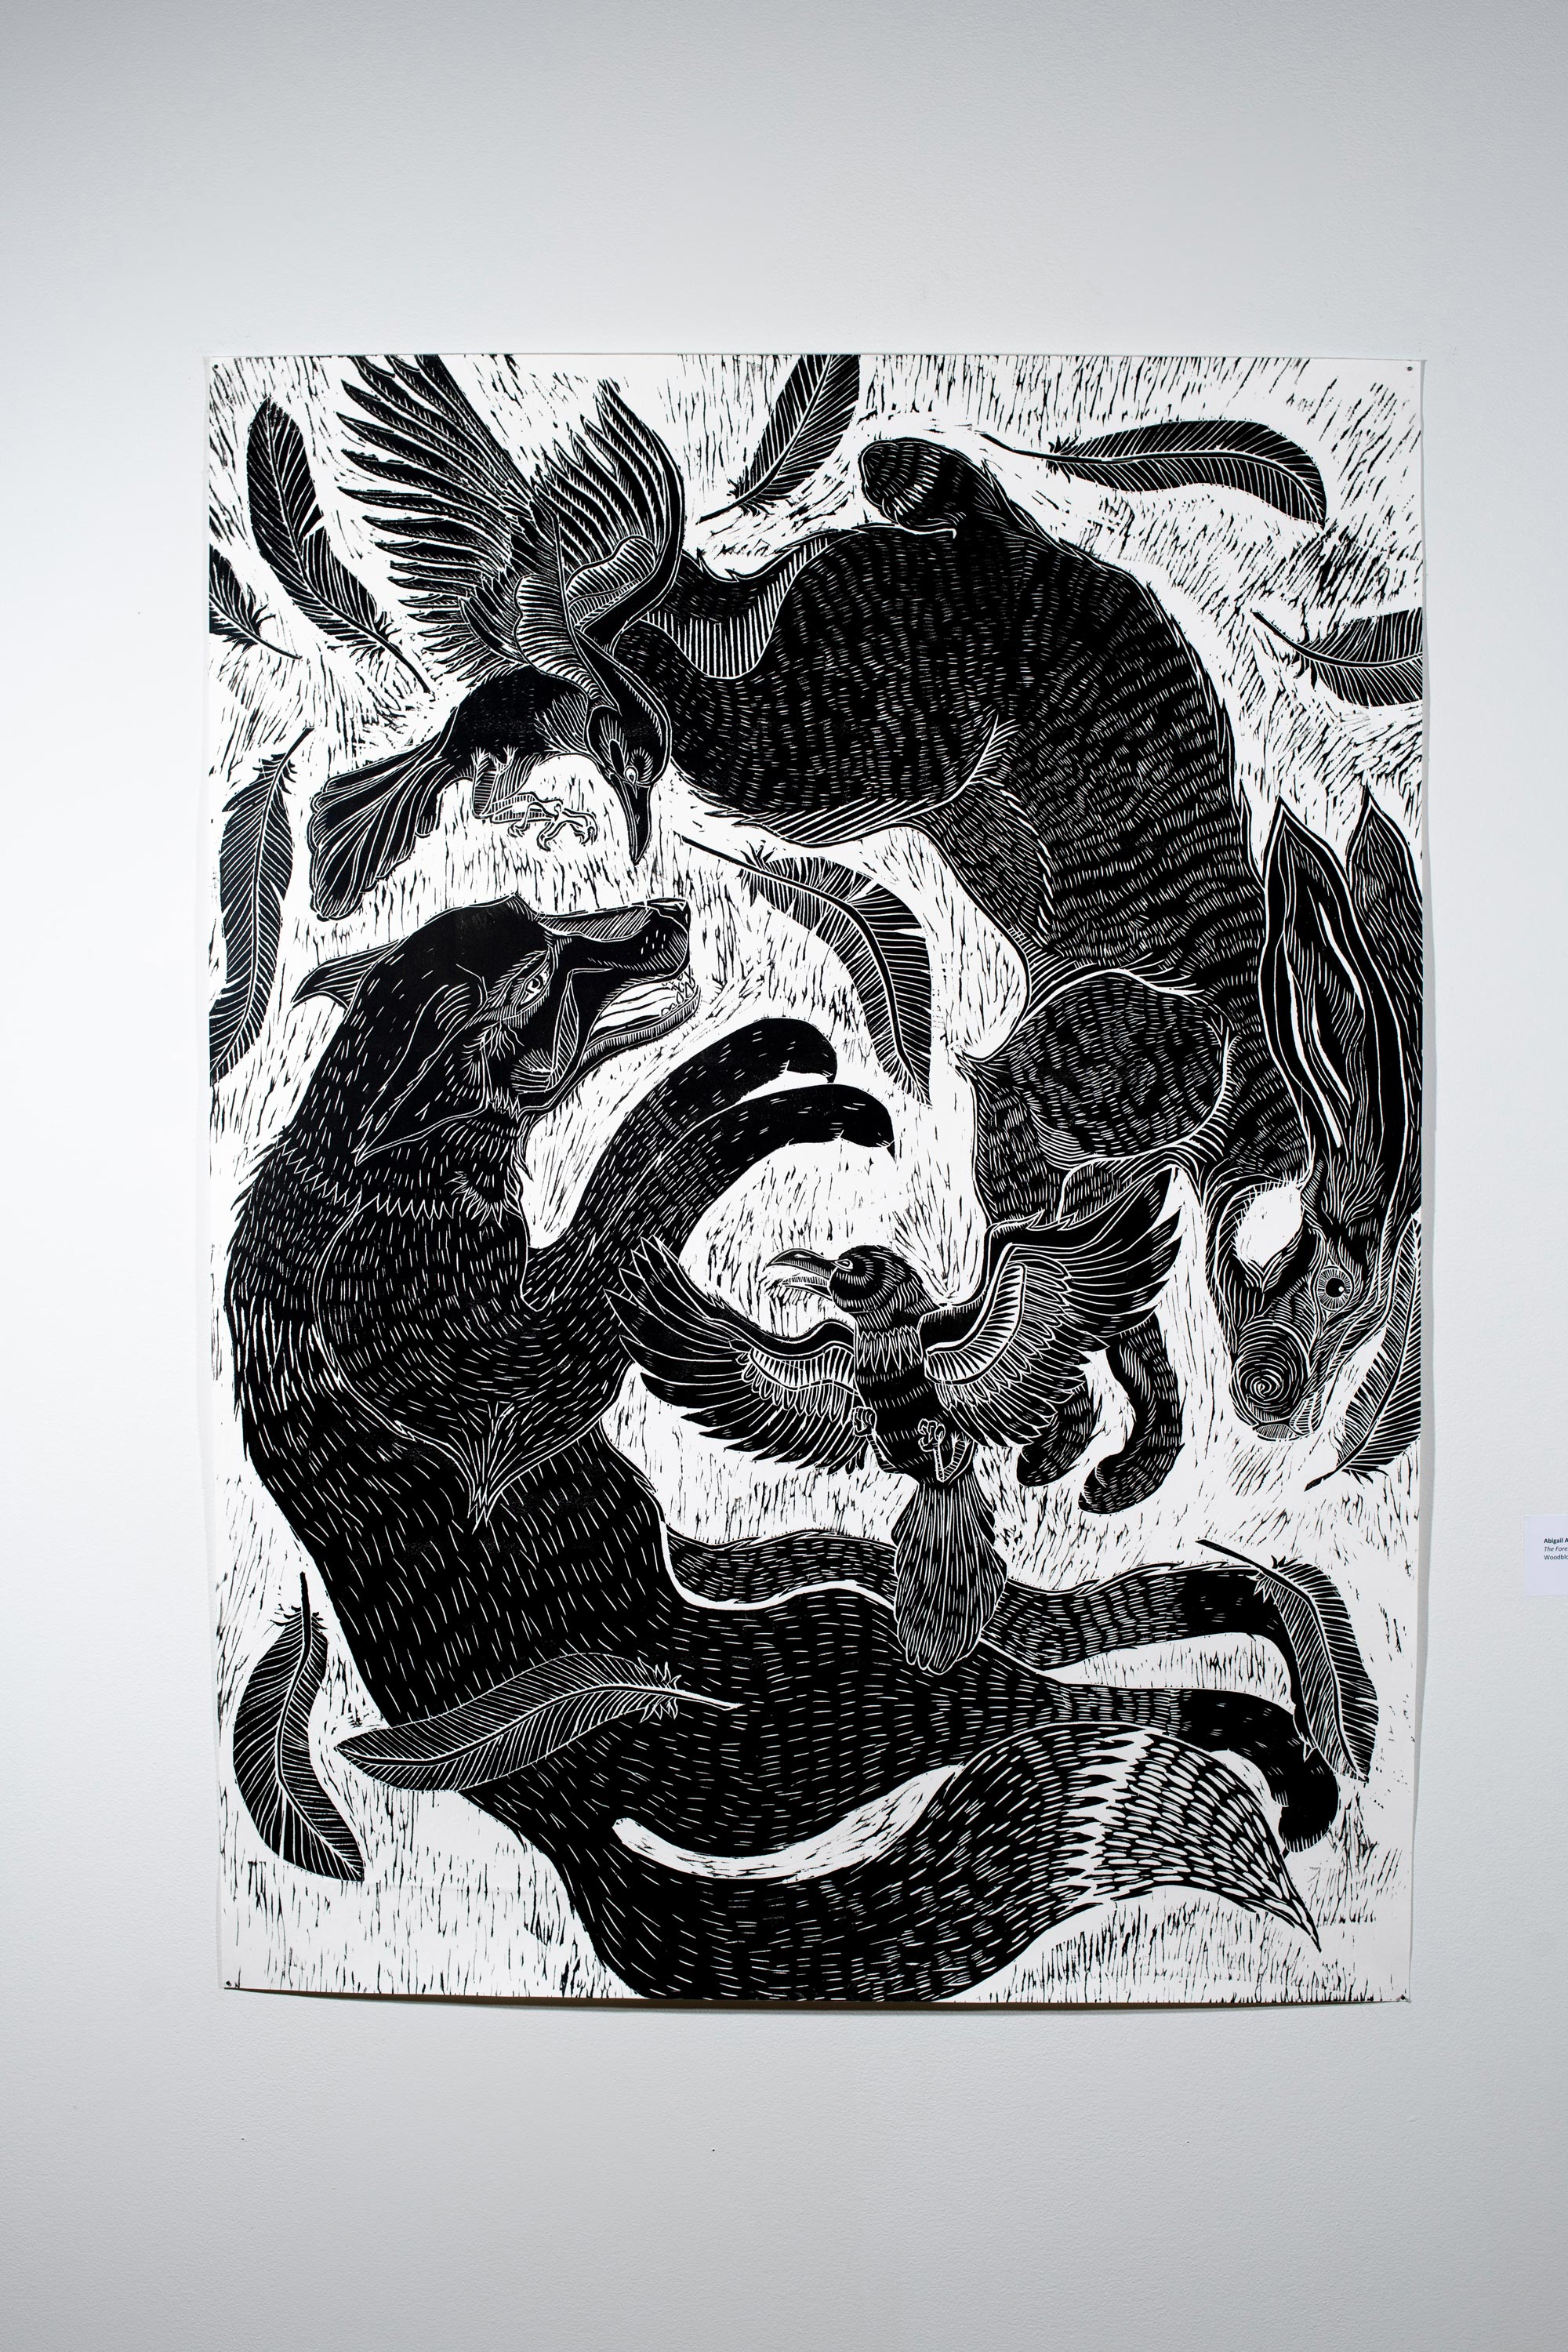 The Forest and The Flock by Abigail Annis [Woodblock Print, 2018]